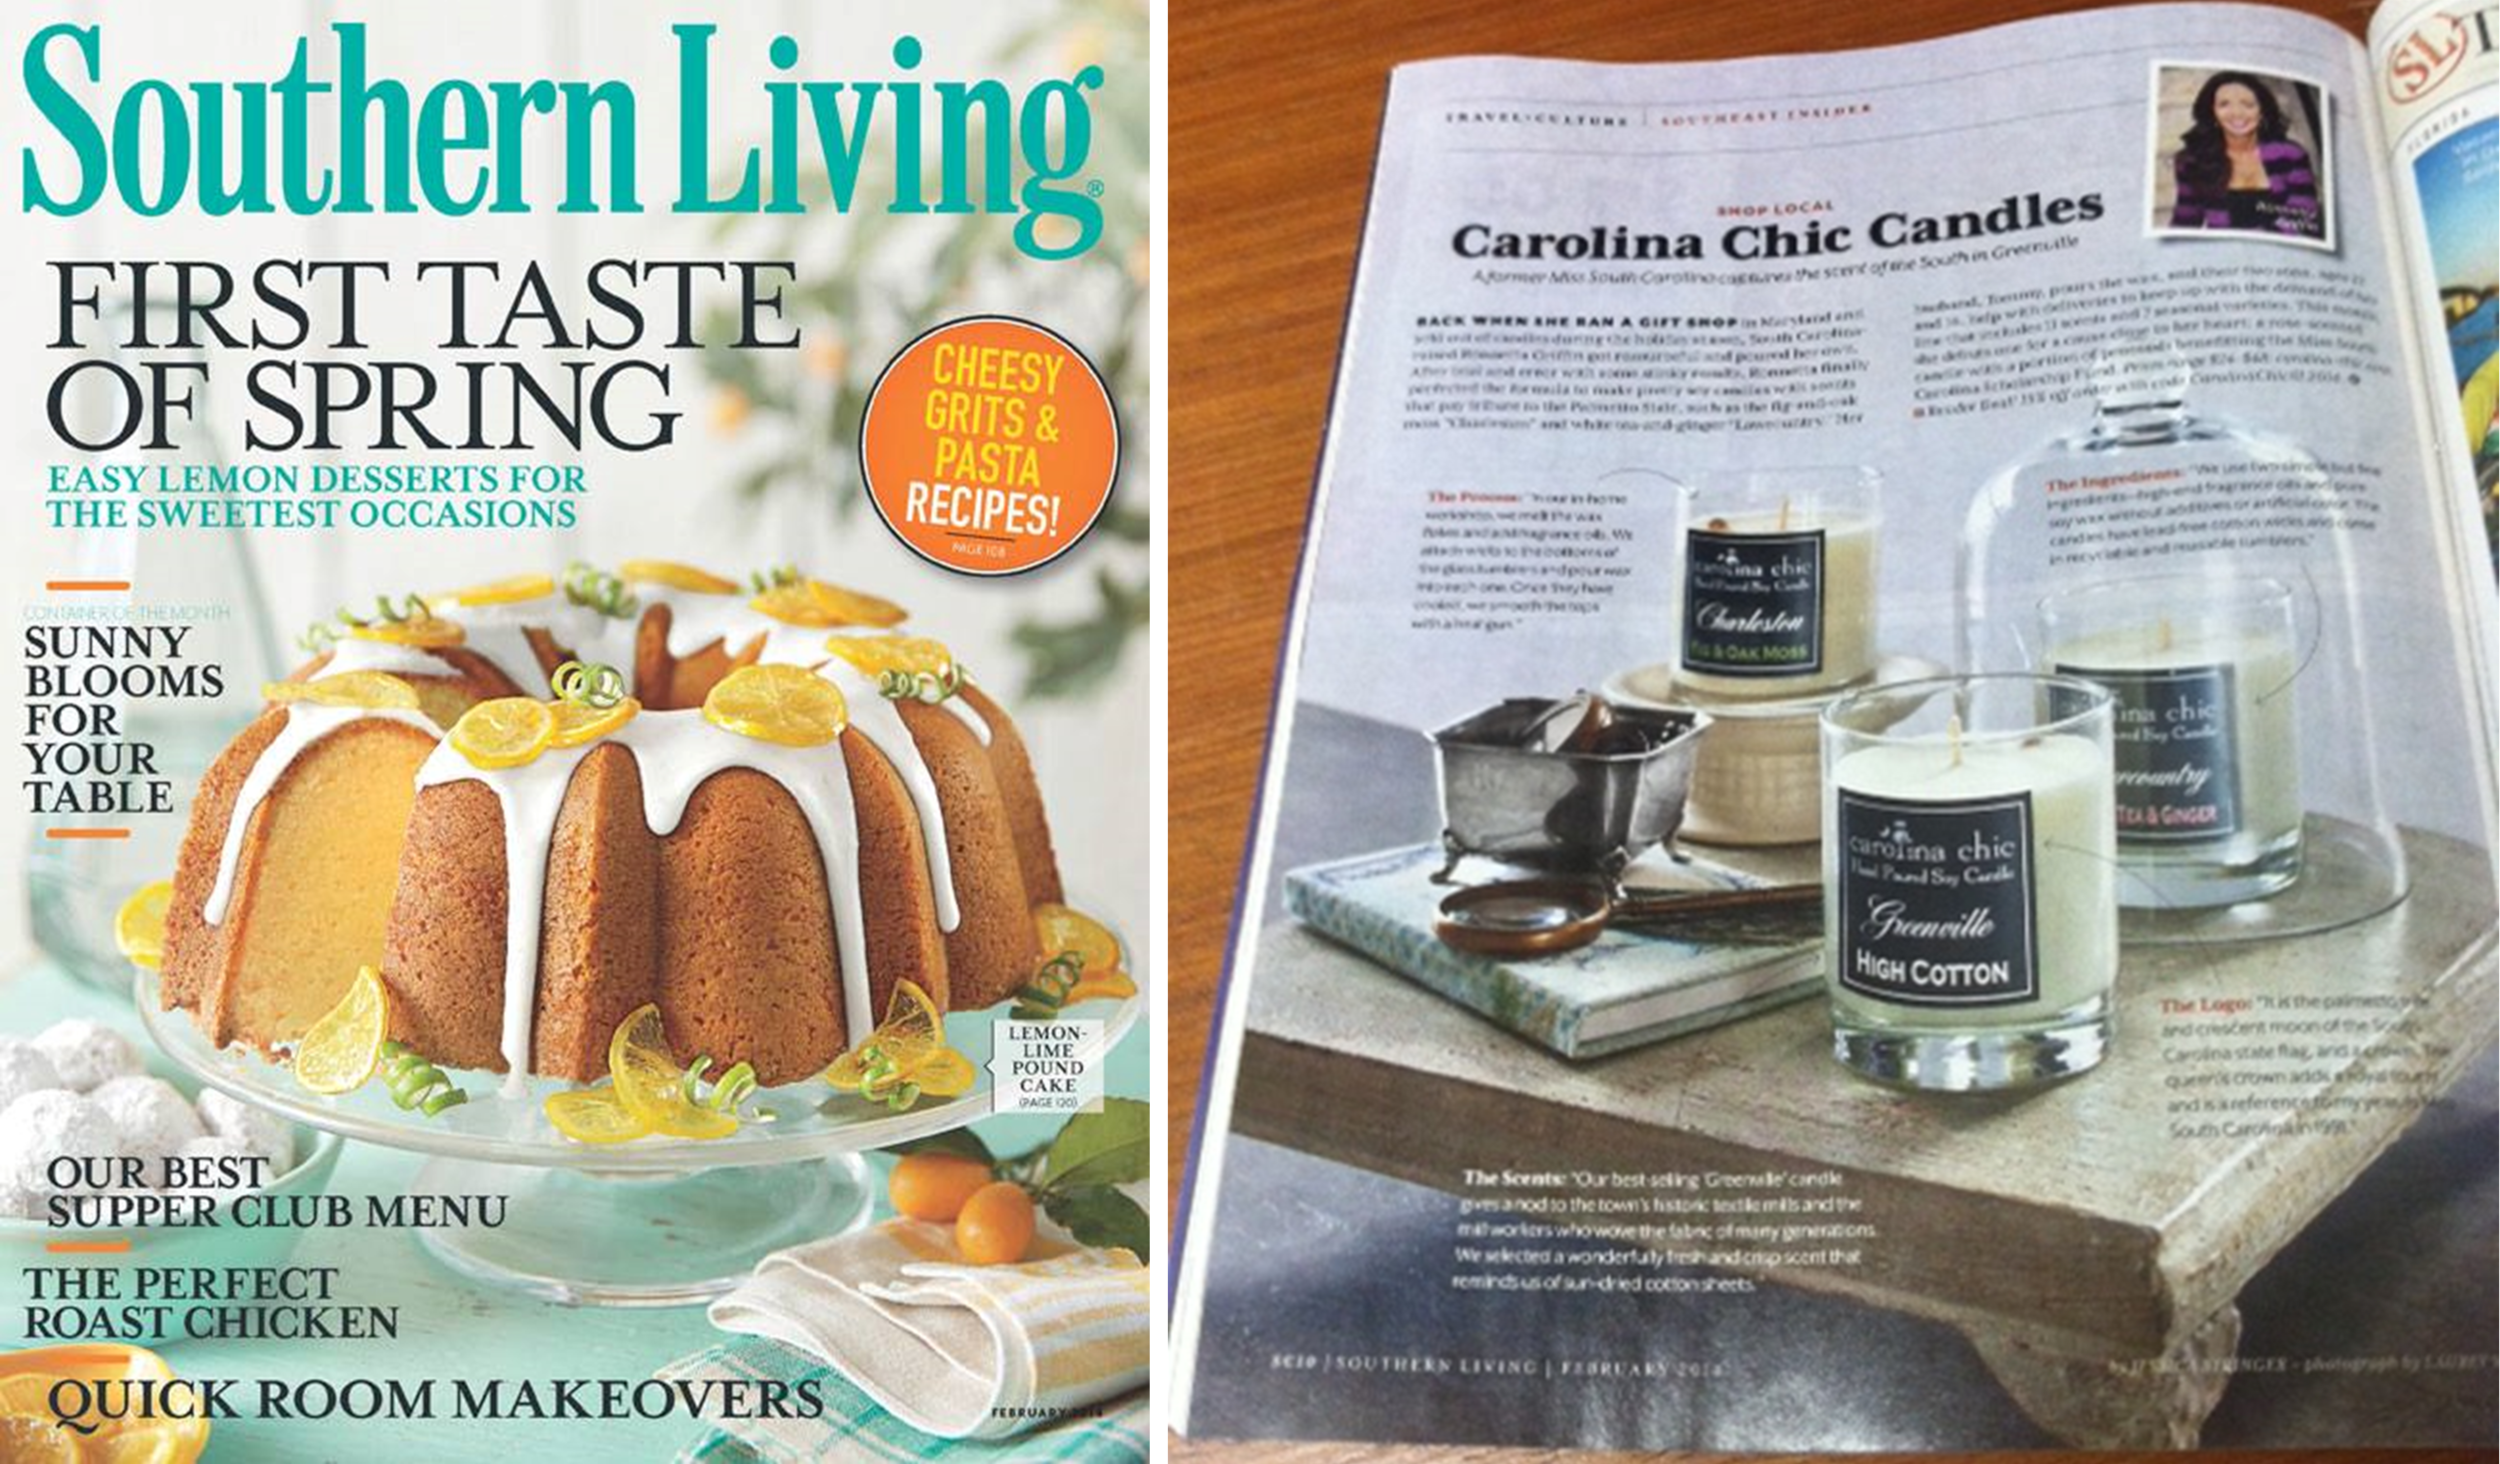 Southern Living , February 2014